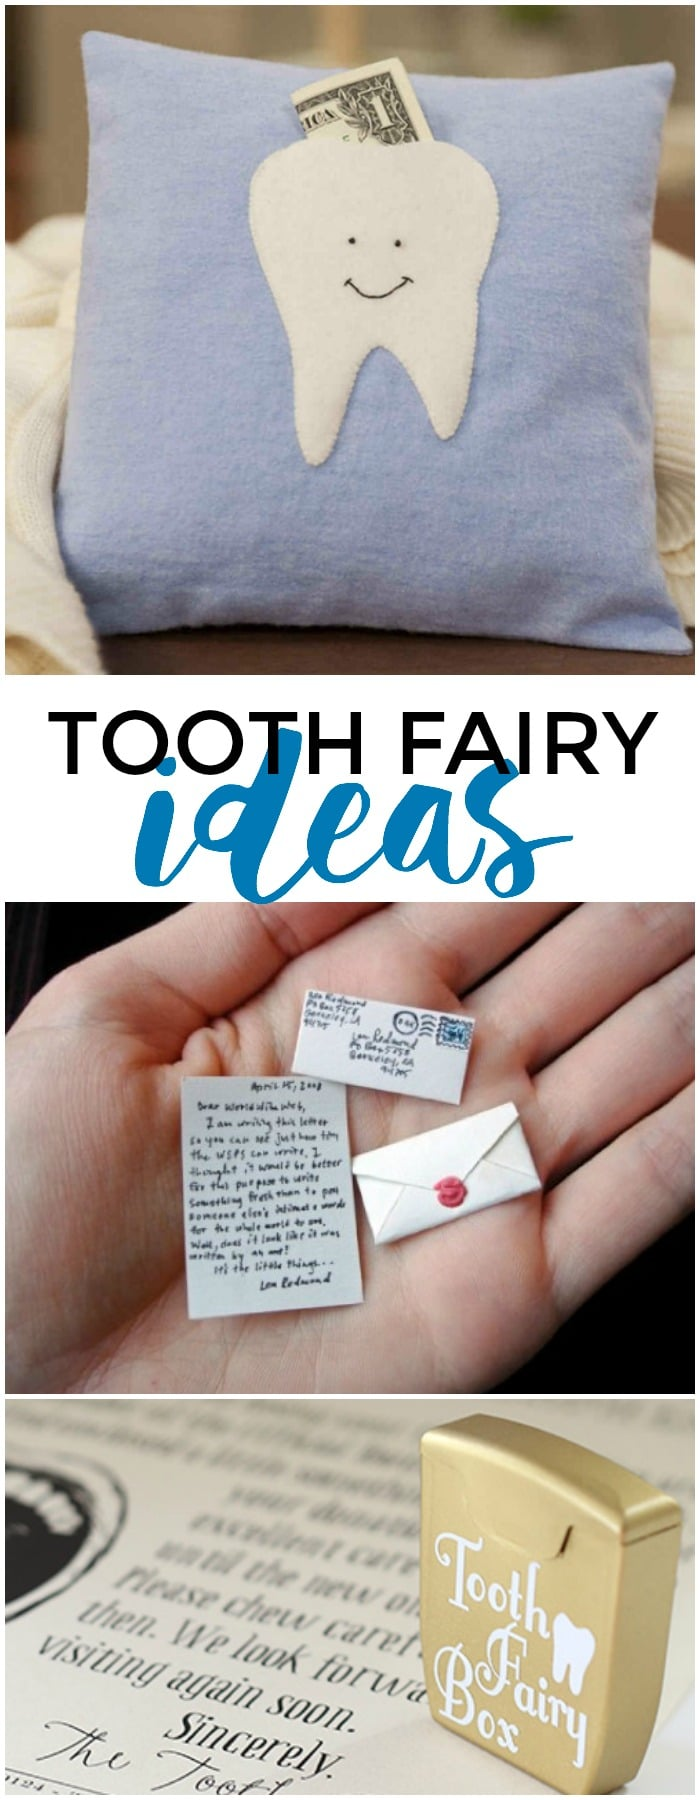 15 creative tooth fairy ideas + 5 clever excuses why the Tooth Fairy forgot to come!